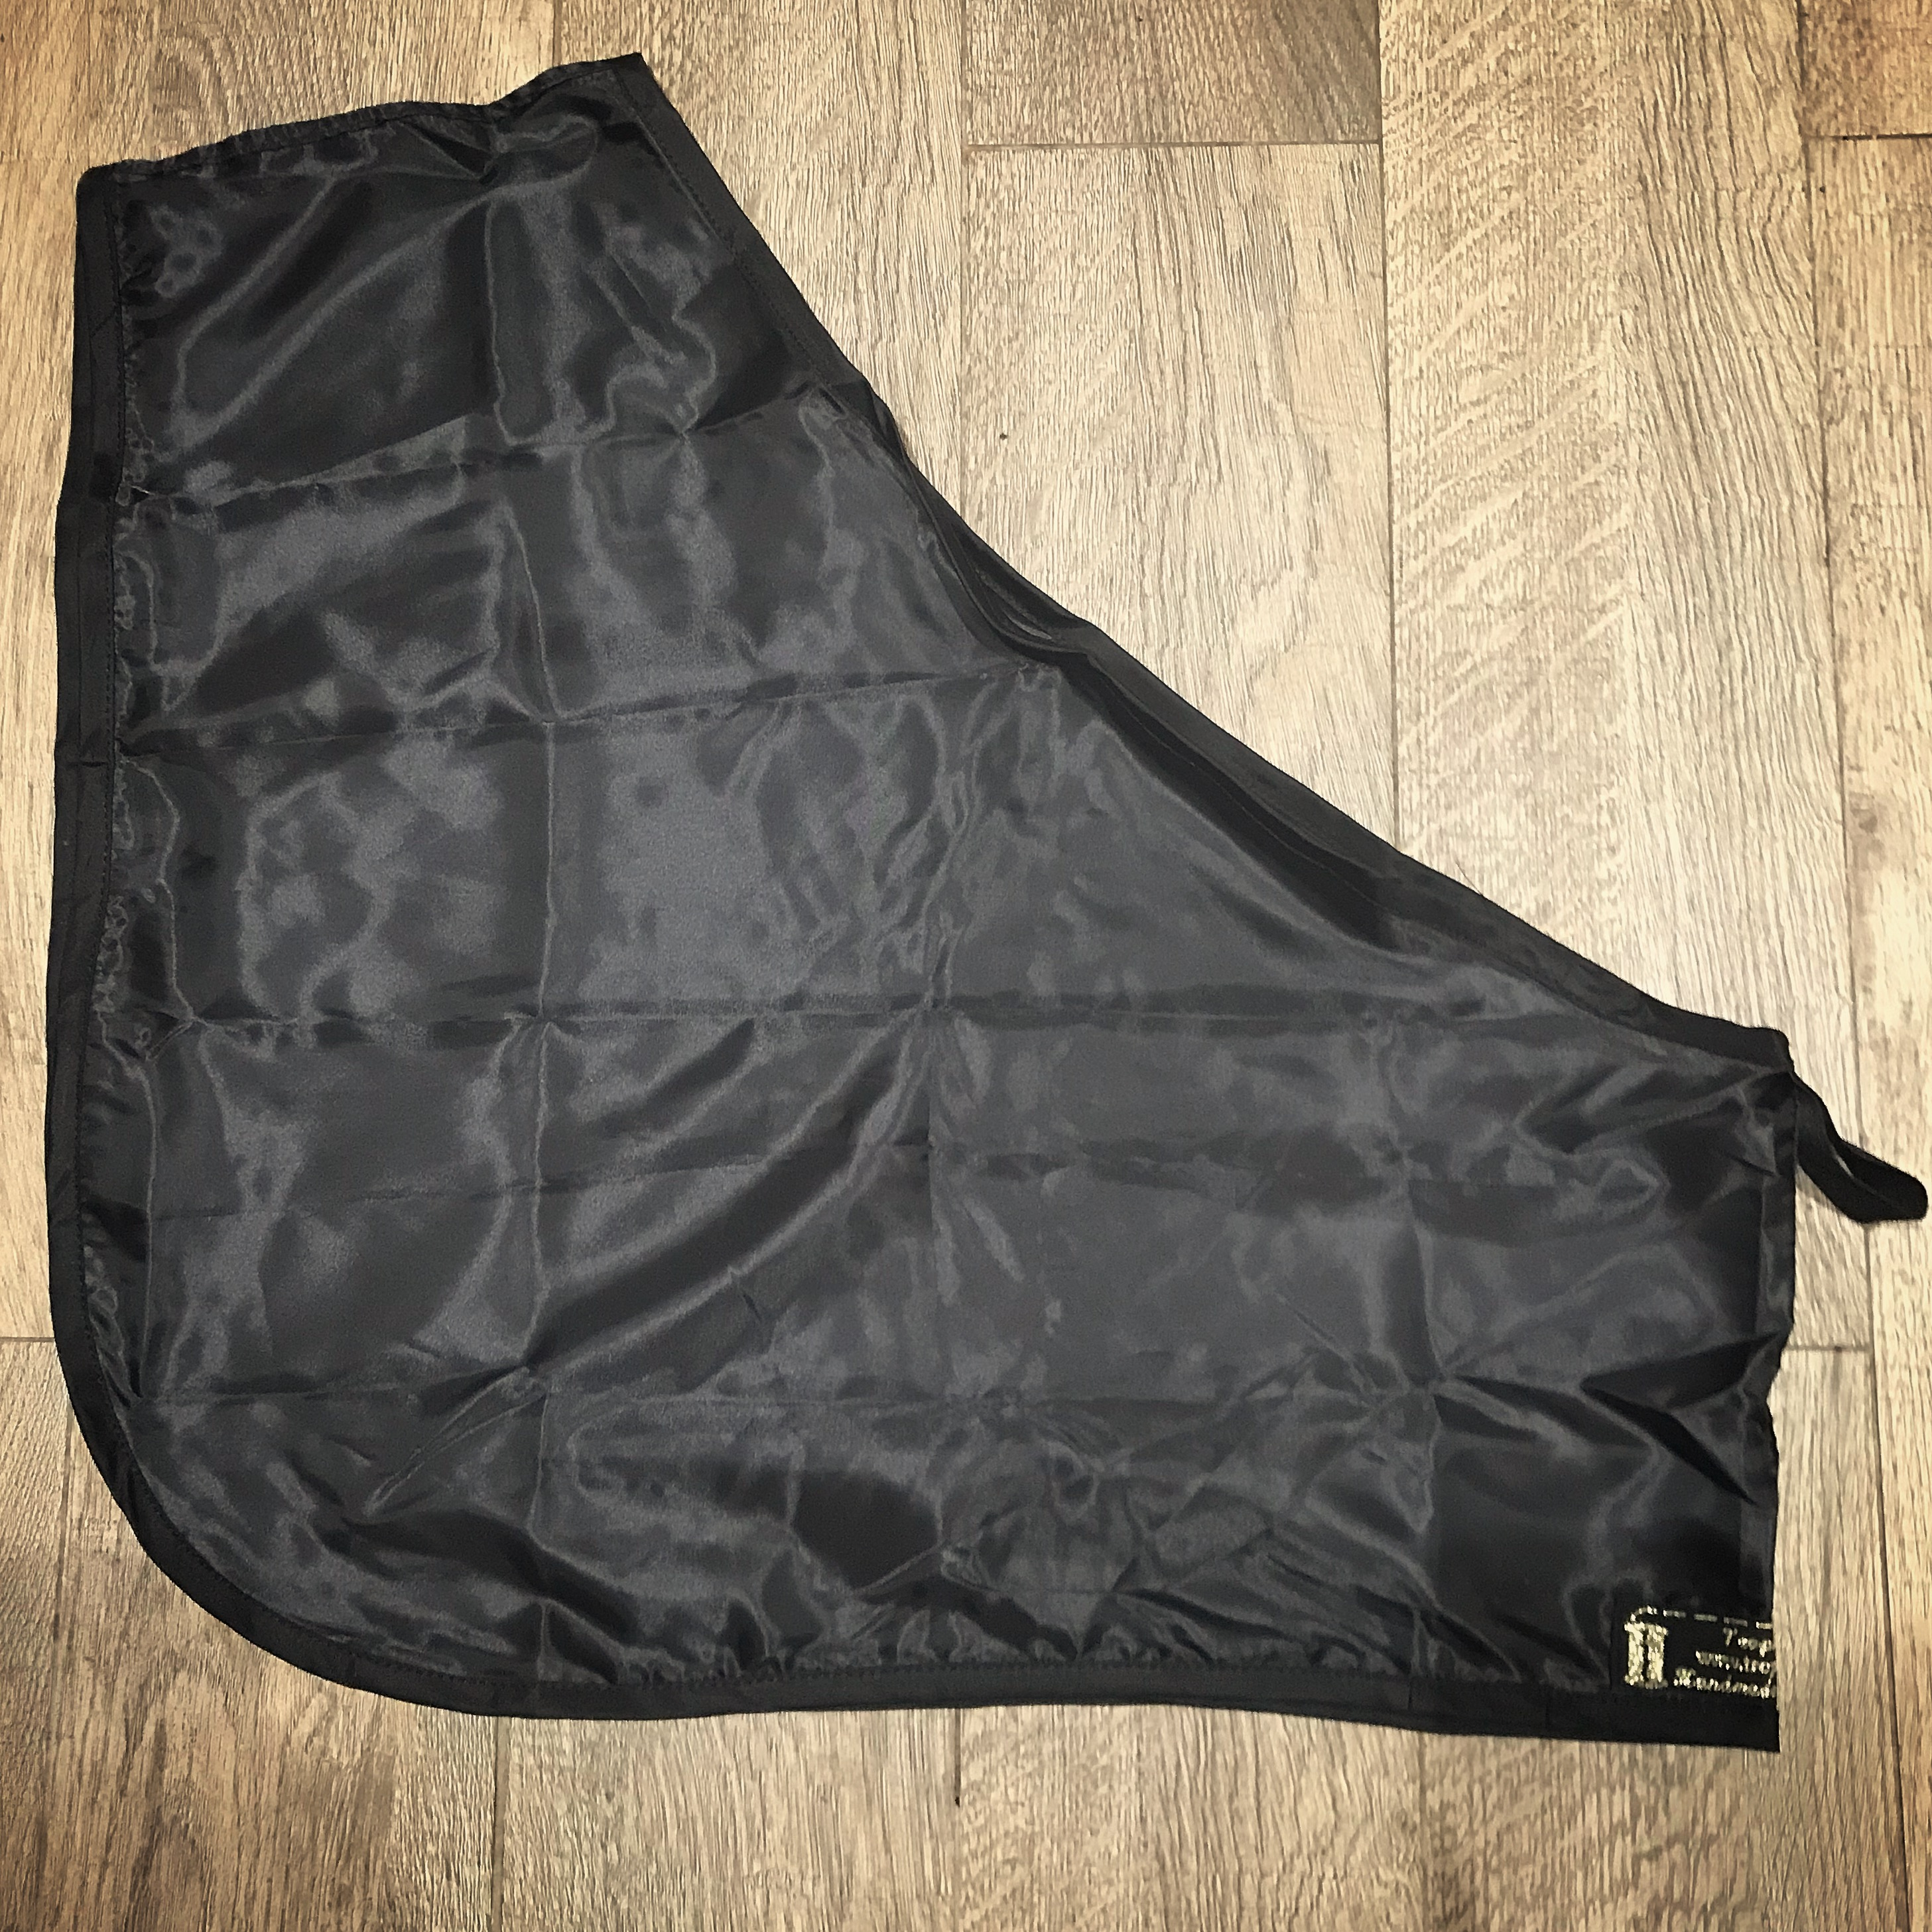 Satin Shoulder Guard